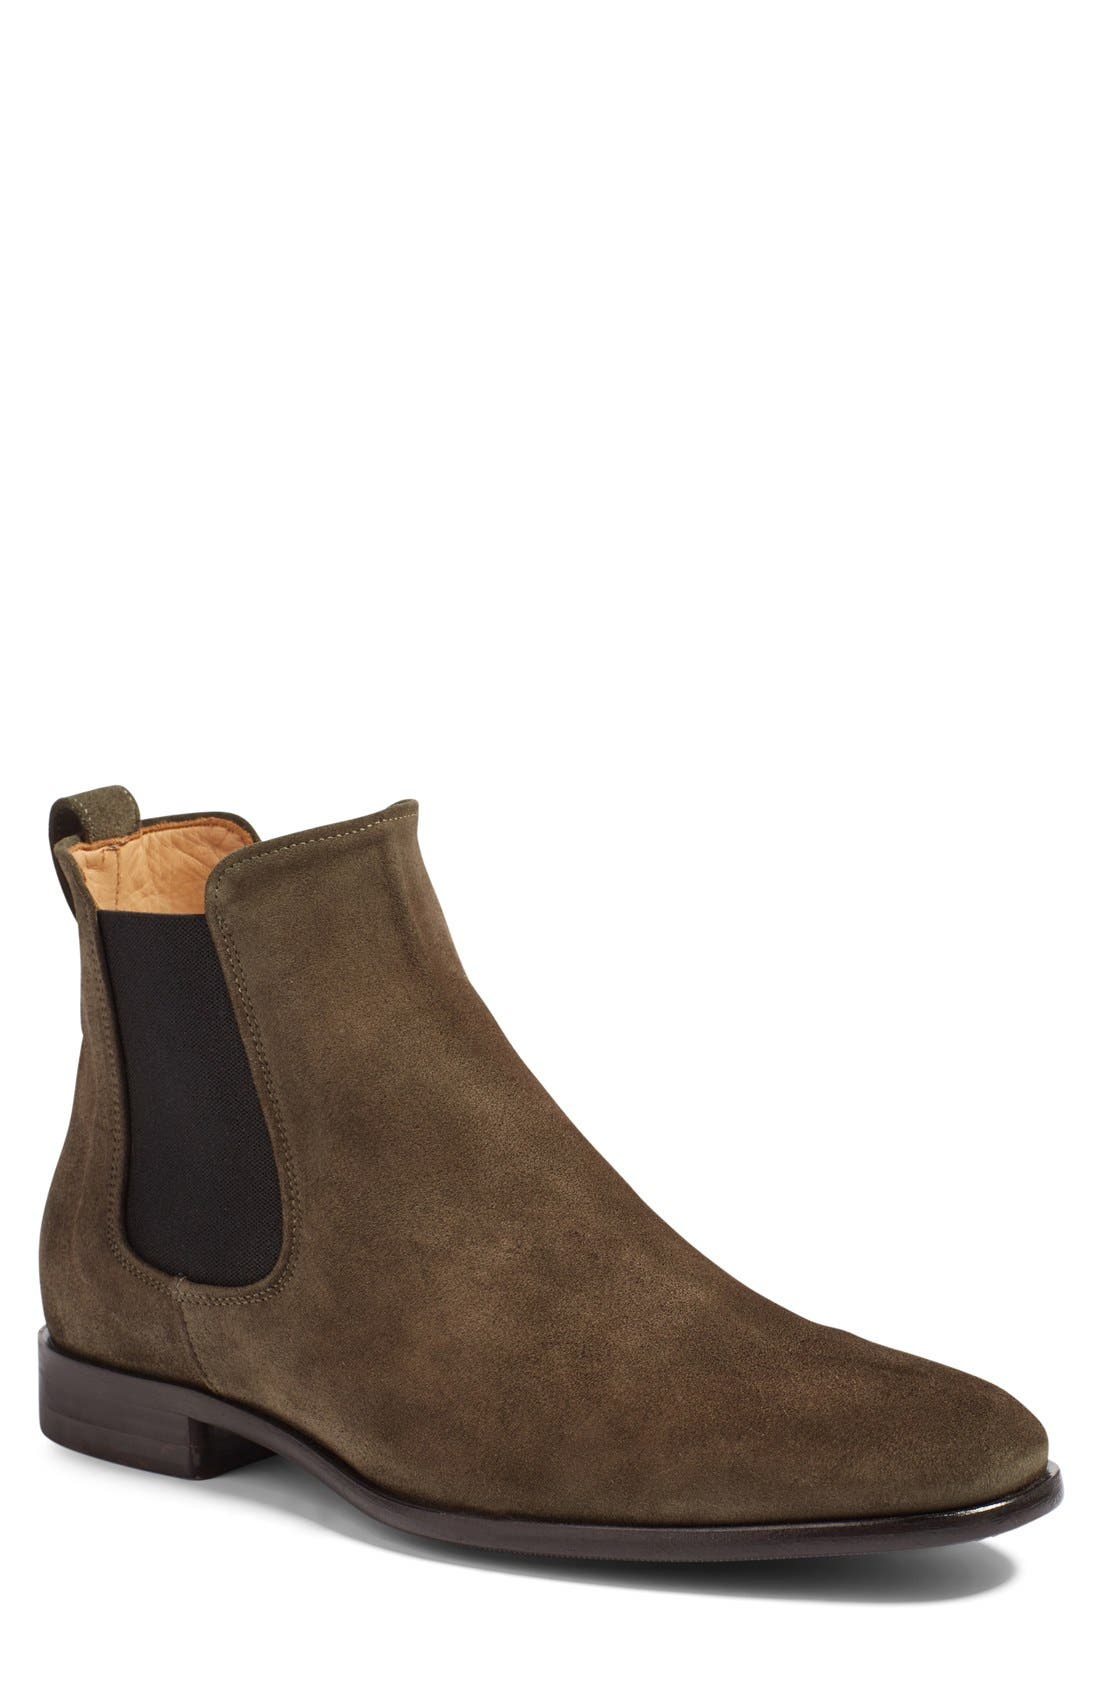 Arthur Chelsea Boot,                             Main thumbnail 3, color,